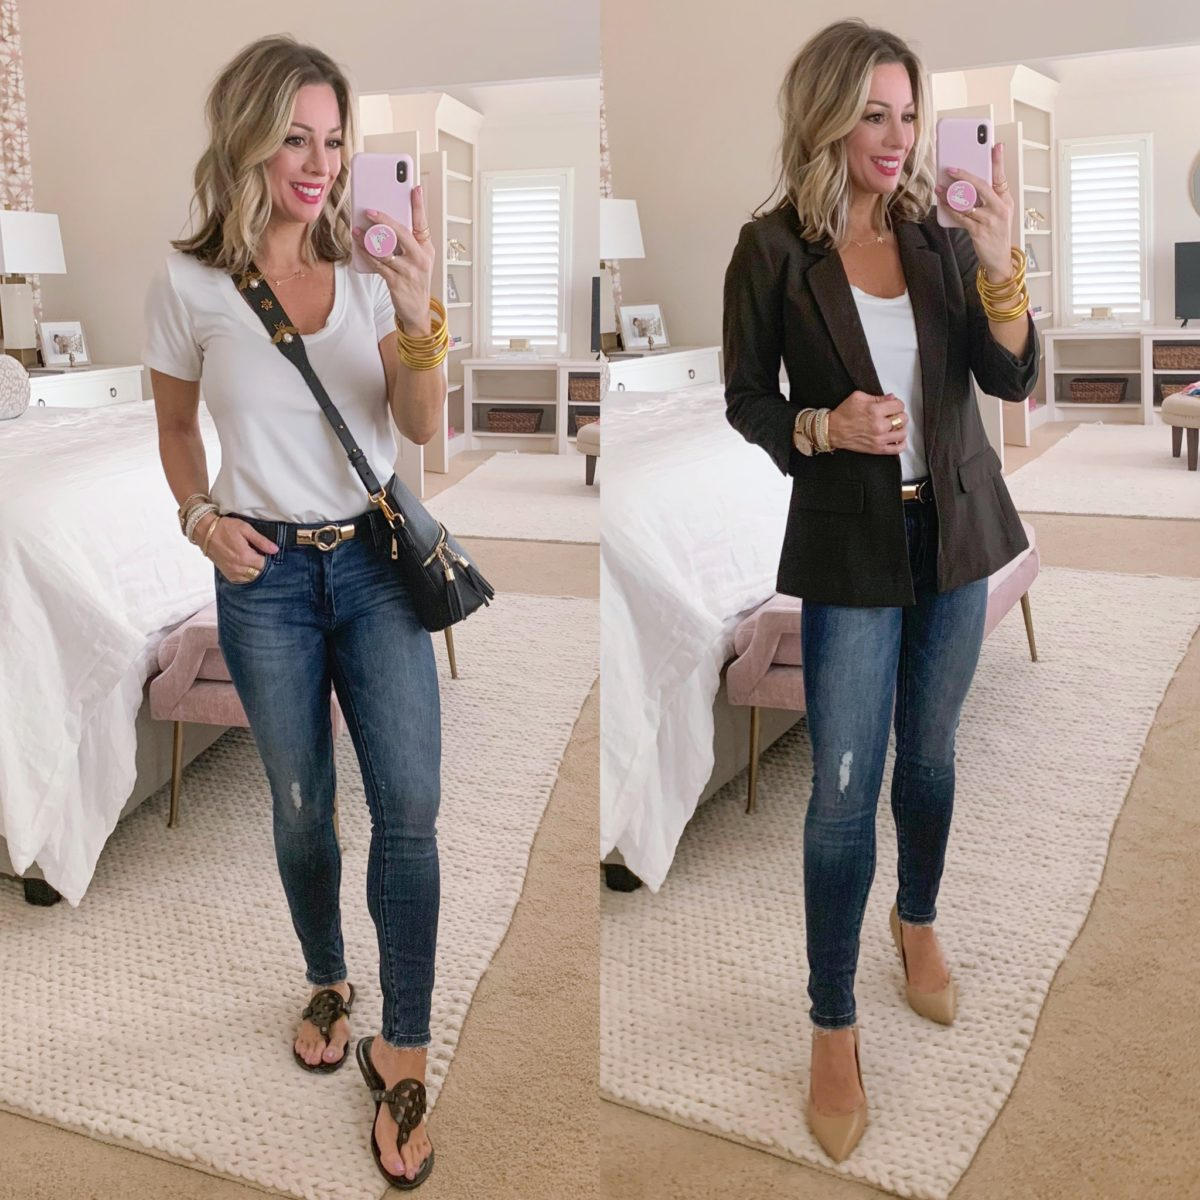 Scoop Neck Tee, Kut from KLOTH Jeans, Duper Sandals, Blazer, Heels